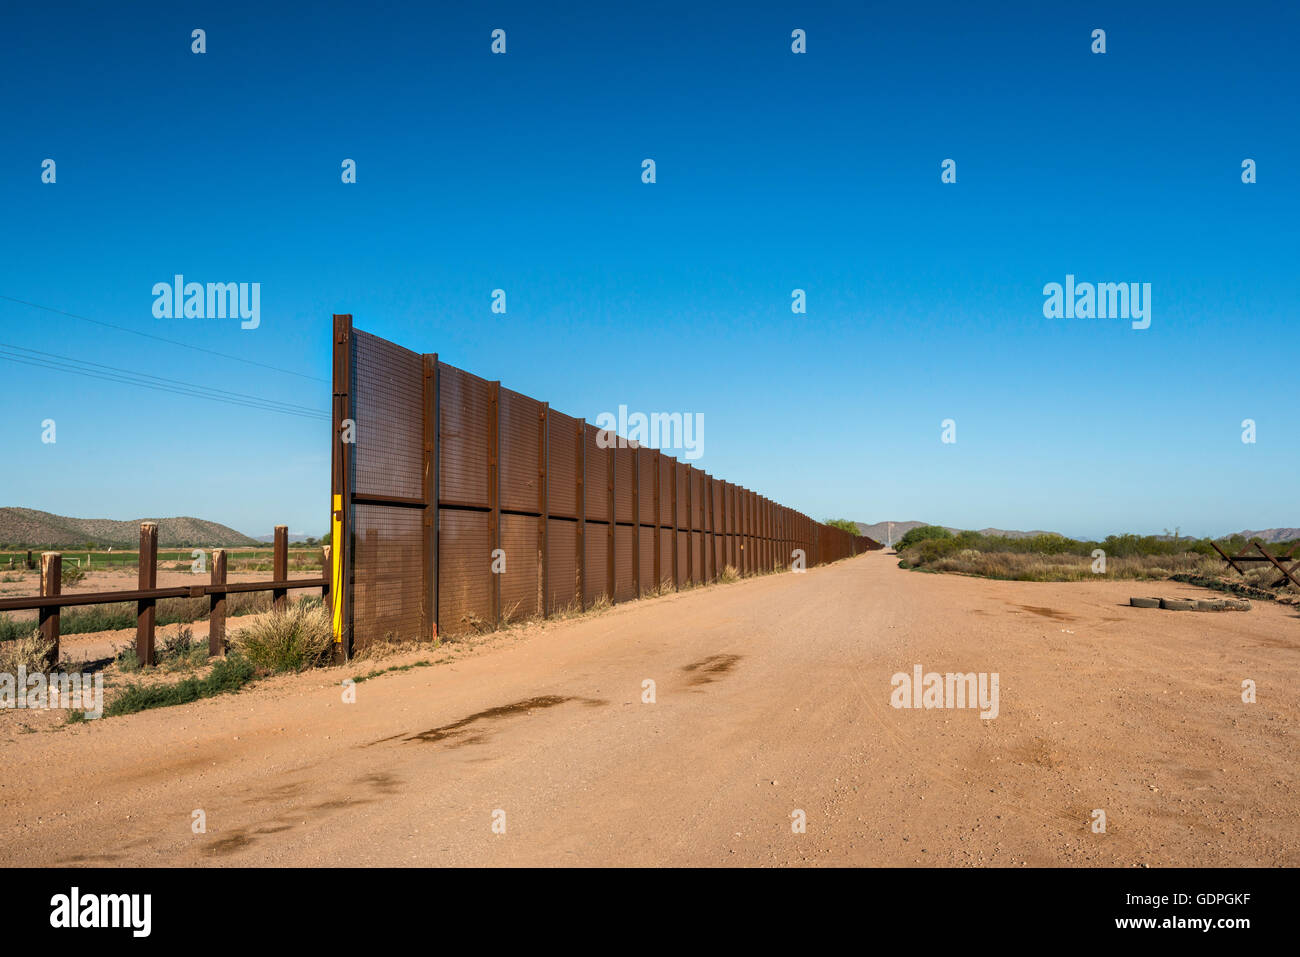 Fence at Mexican border, Sonoran Desert, Organ Pipe Cactus National Monument, Arizona, USA - Stock Image